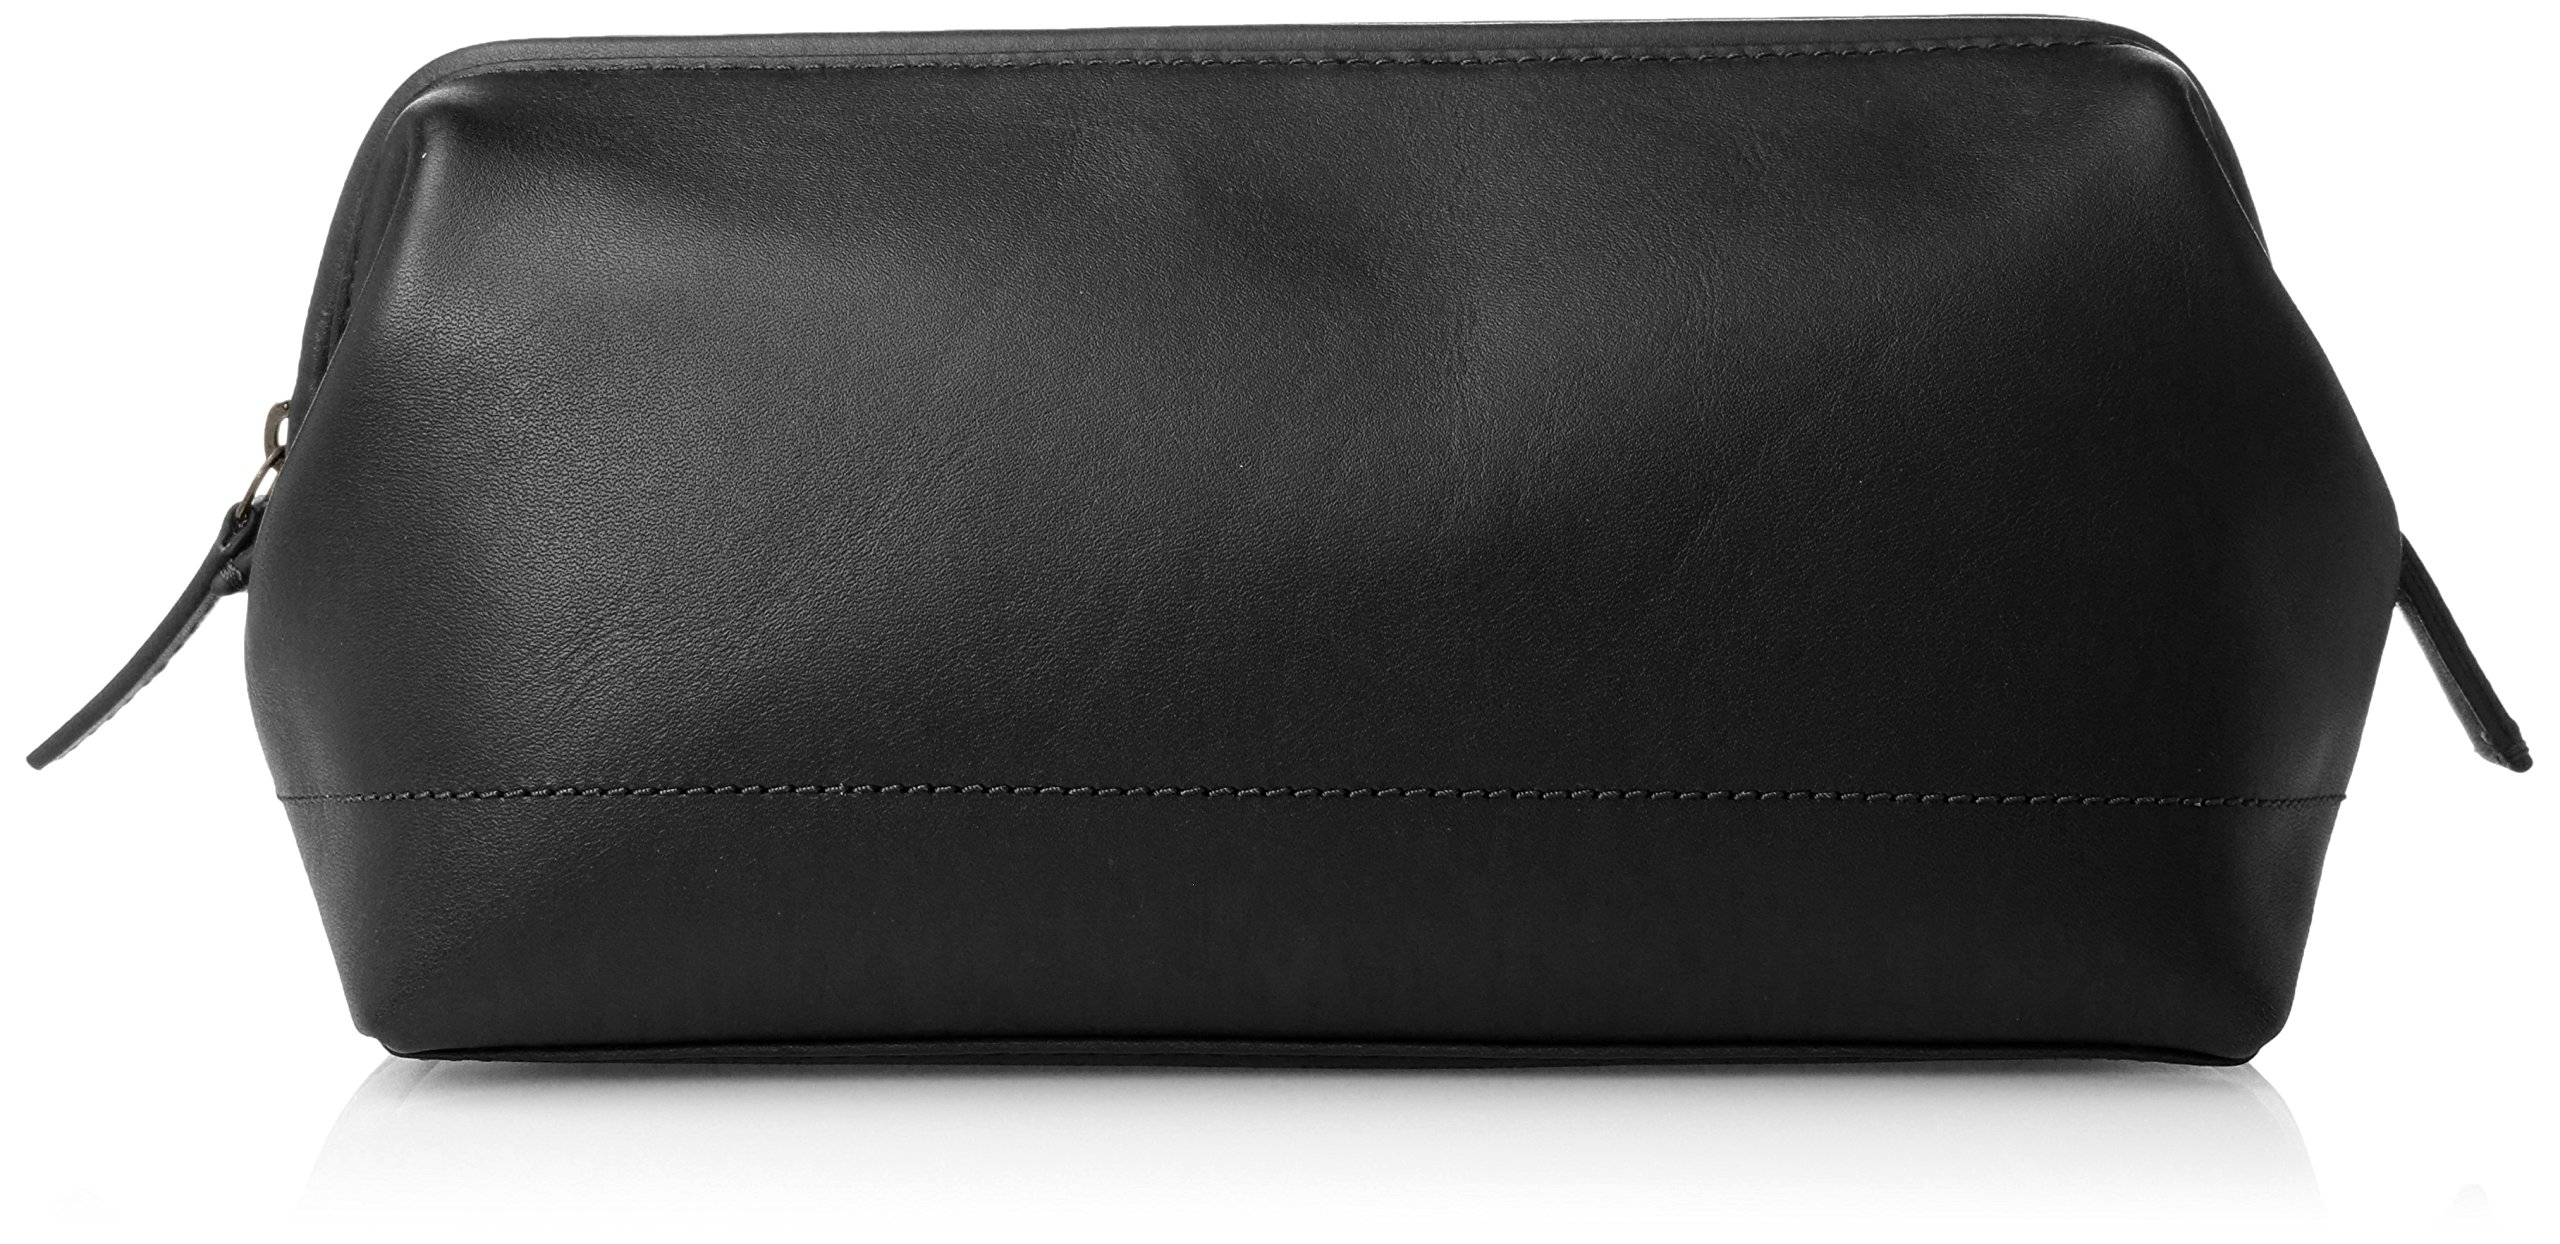 Fossil Men's Framed Shave Kit Black Accessory, -black, 10.3''L x 6''W x 5.5''H by Fossil (Image #1)